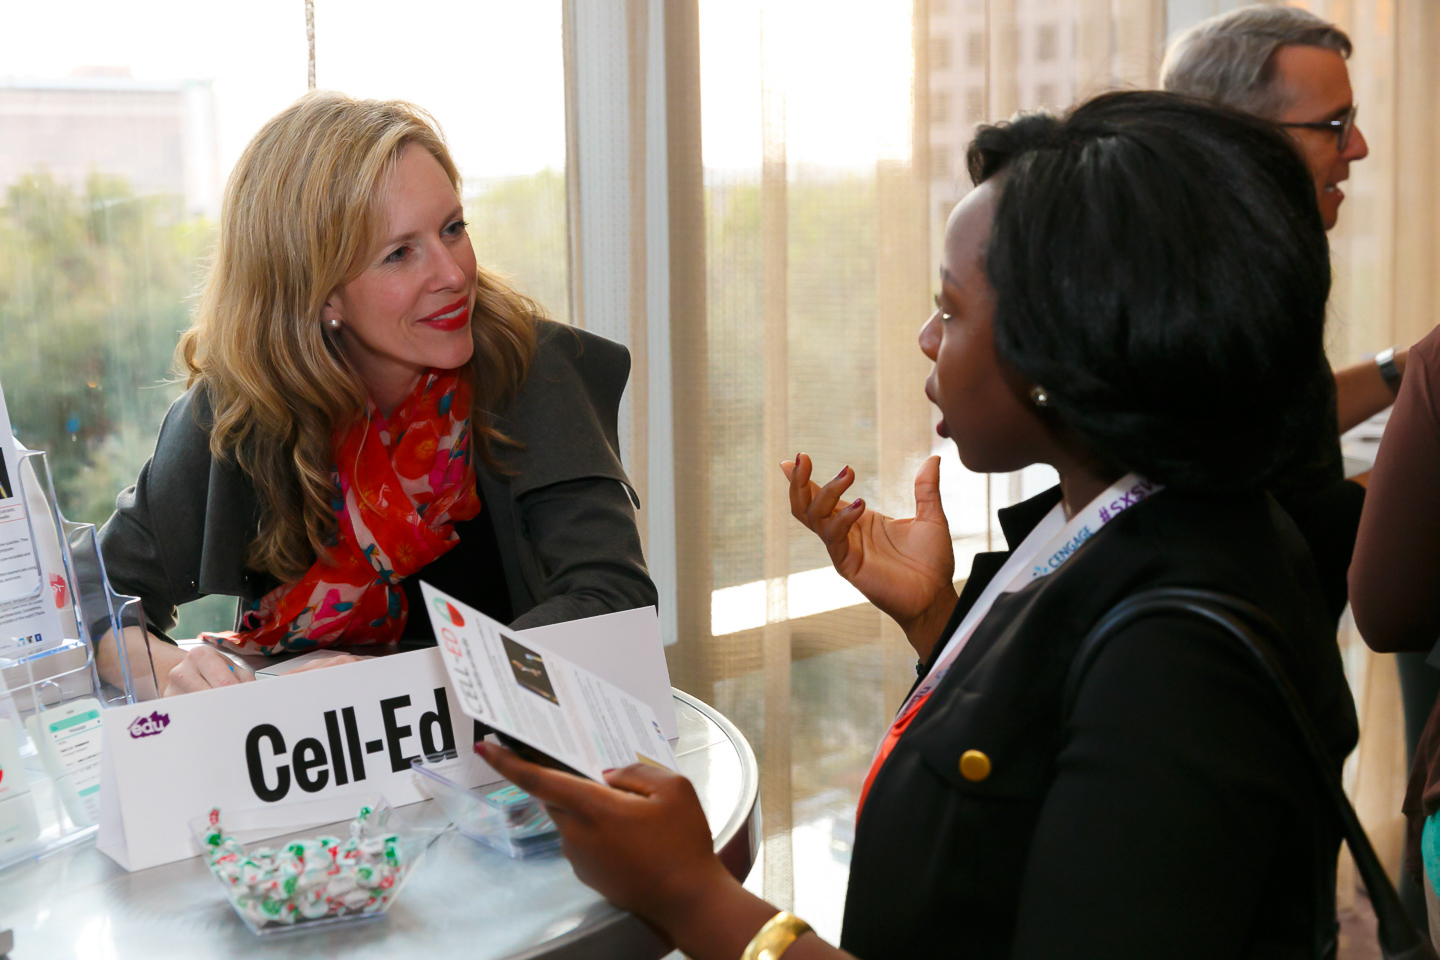 SXSWedu Startup Showcase, featuring Cell-Ed startup. Photo by Diego Donamaria.